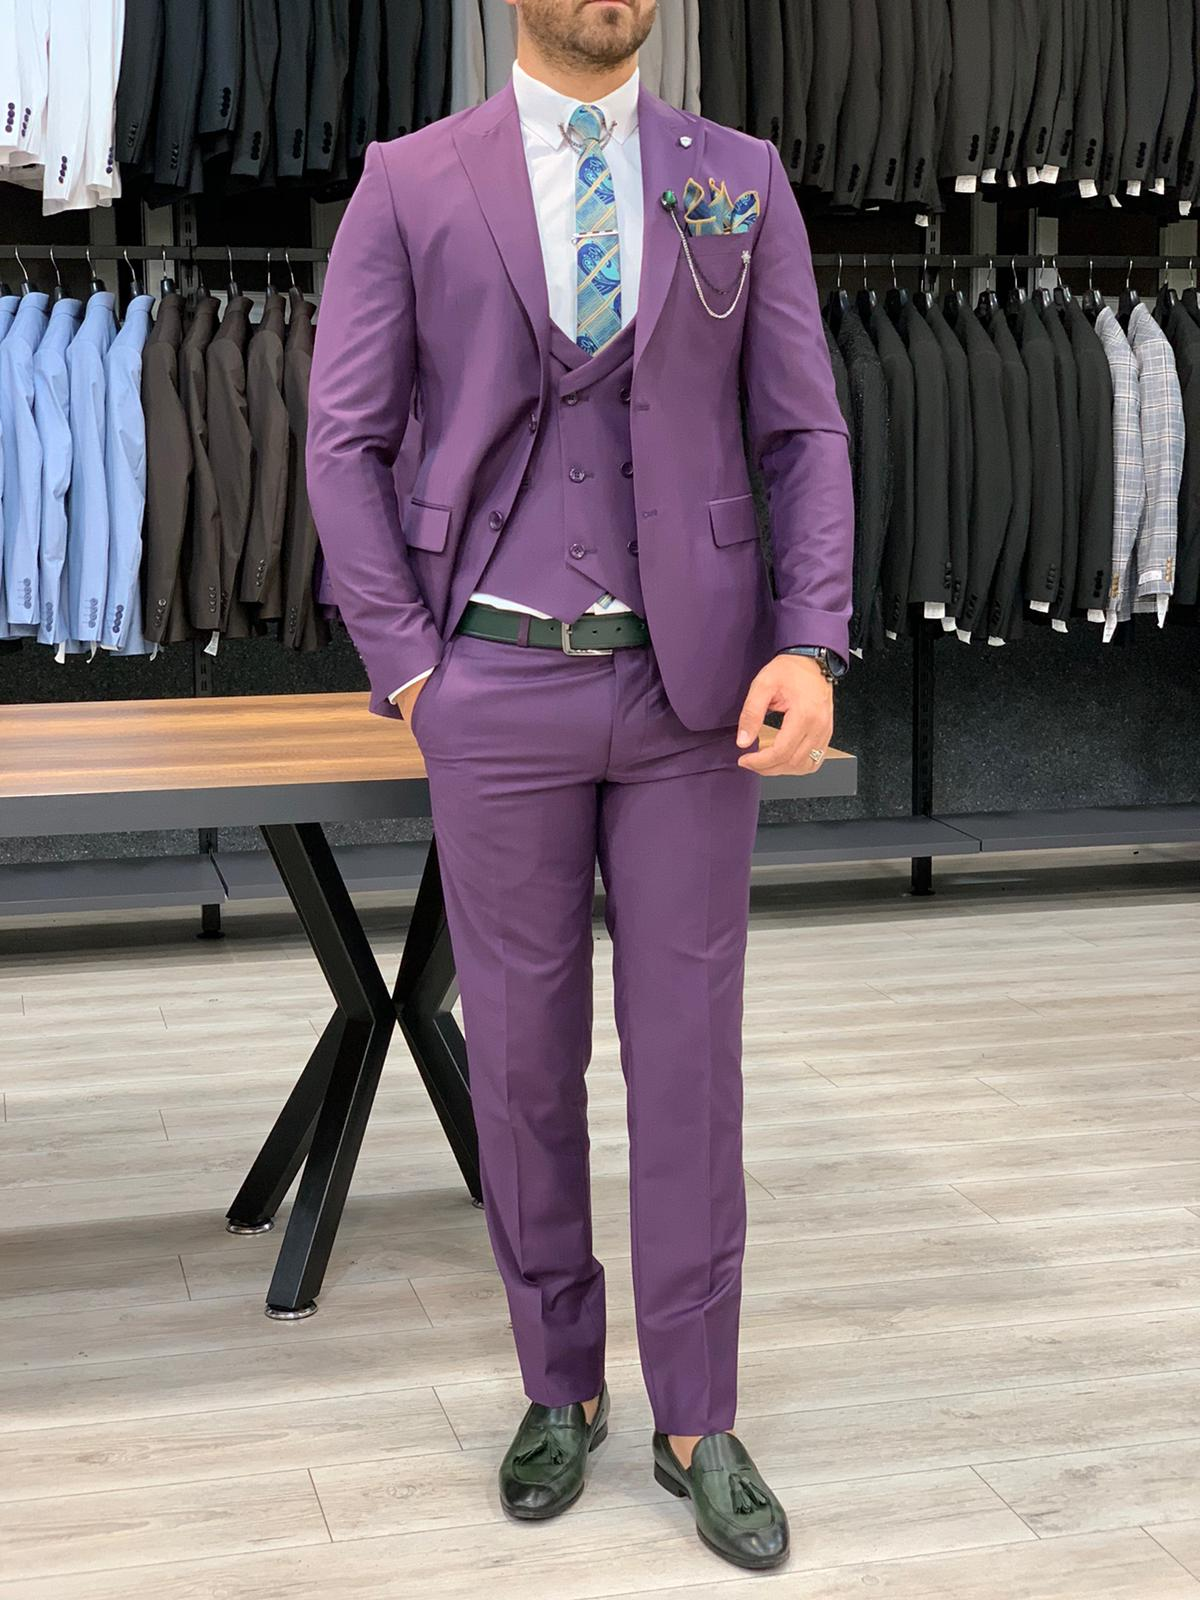 HolloMen OAKLAND PURPLE SUIT - Hollo Men